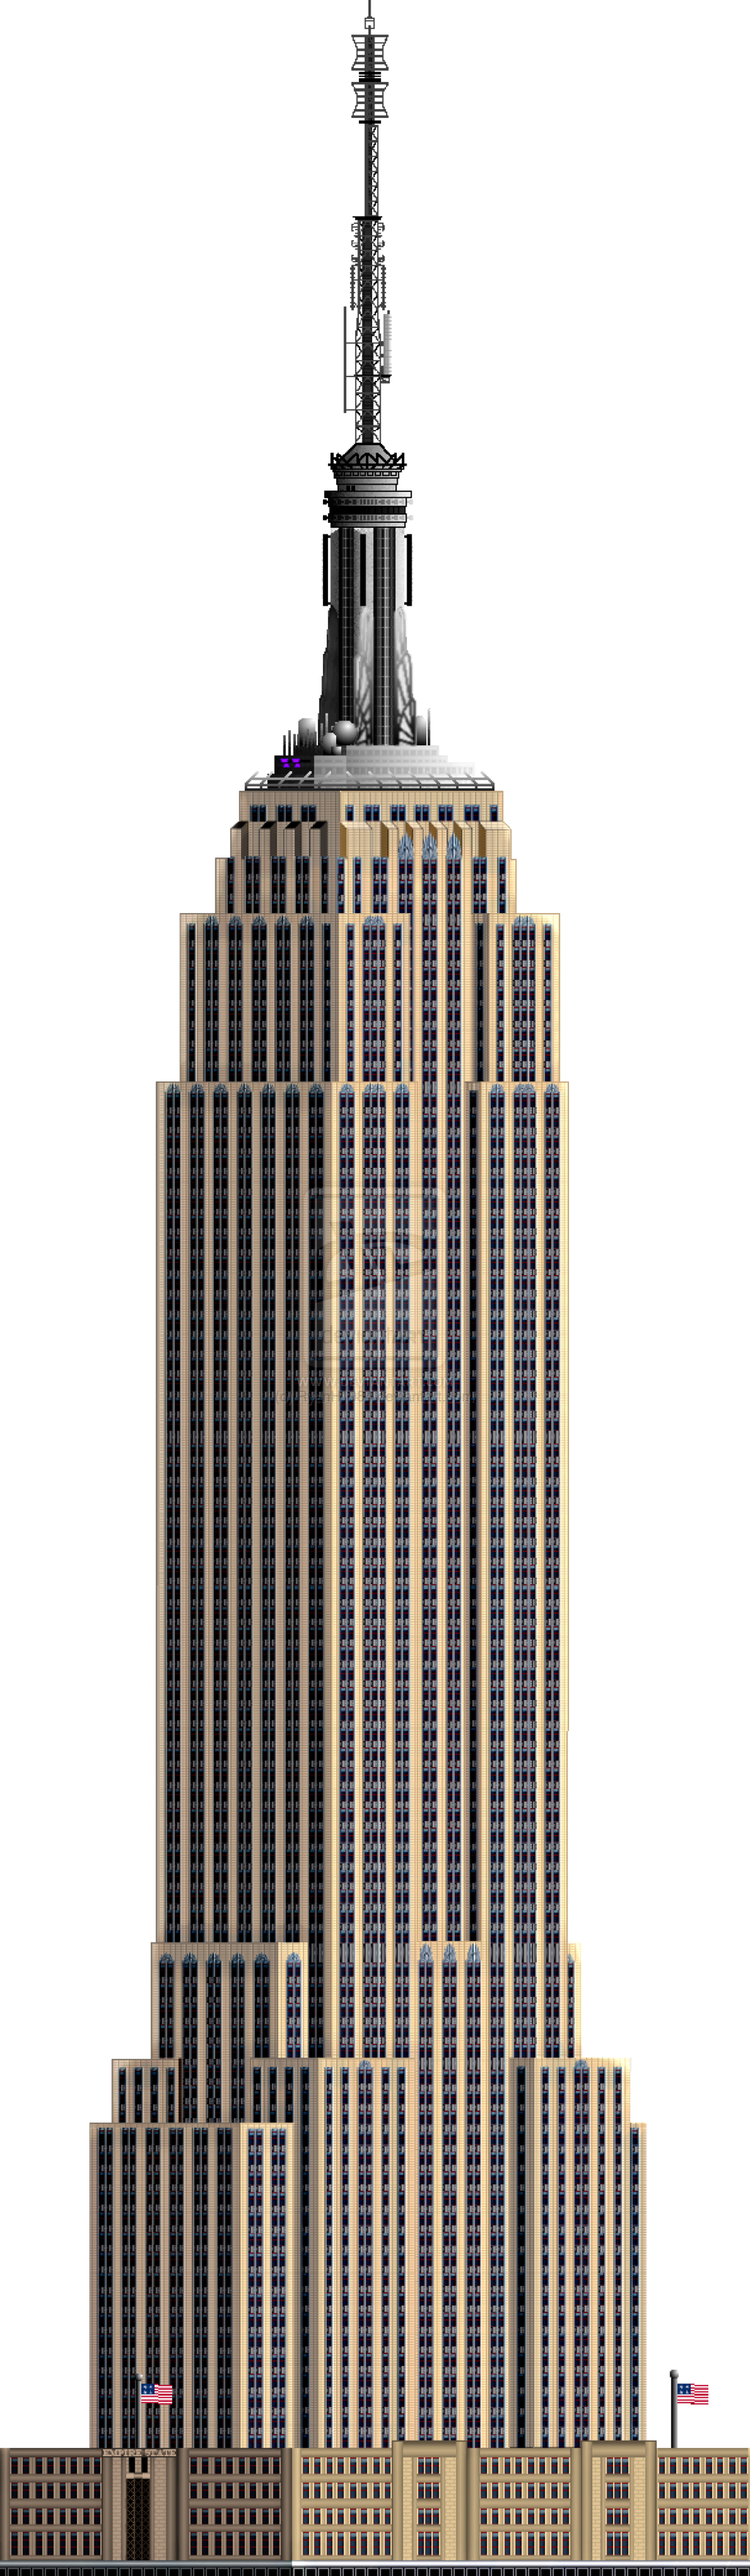 Hotel clipart hotel building. Png images free download